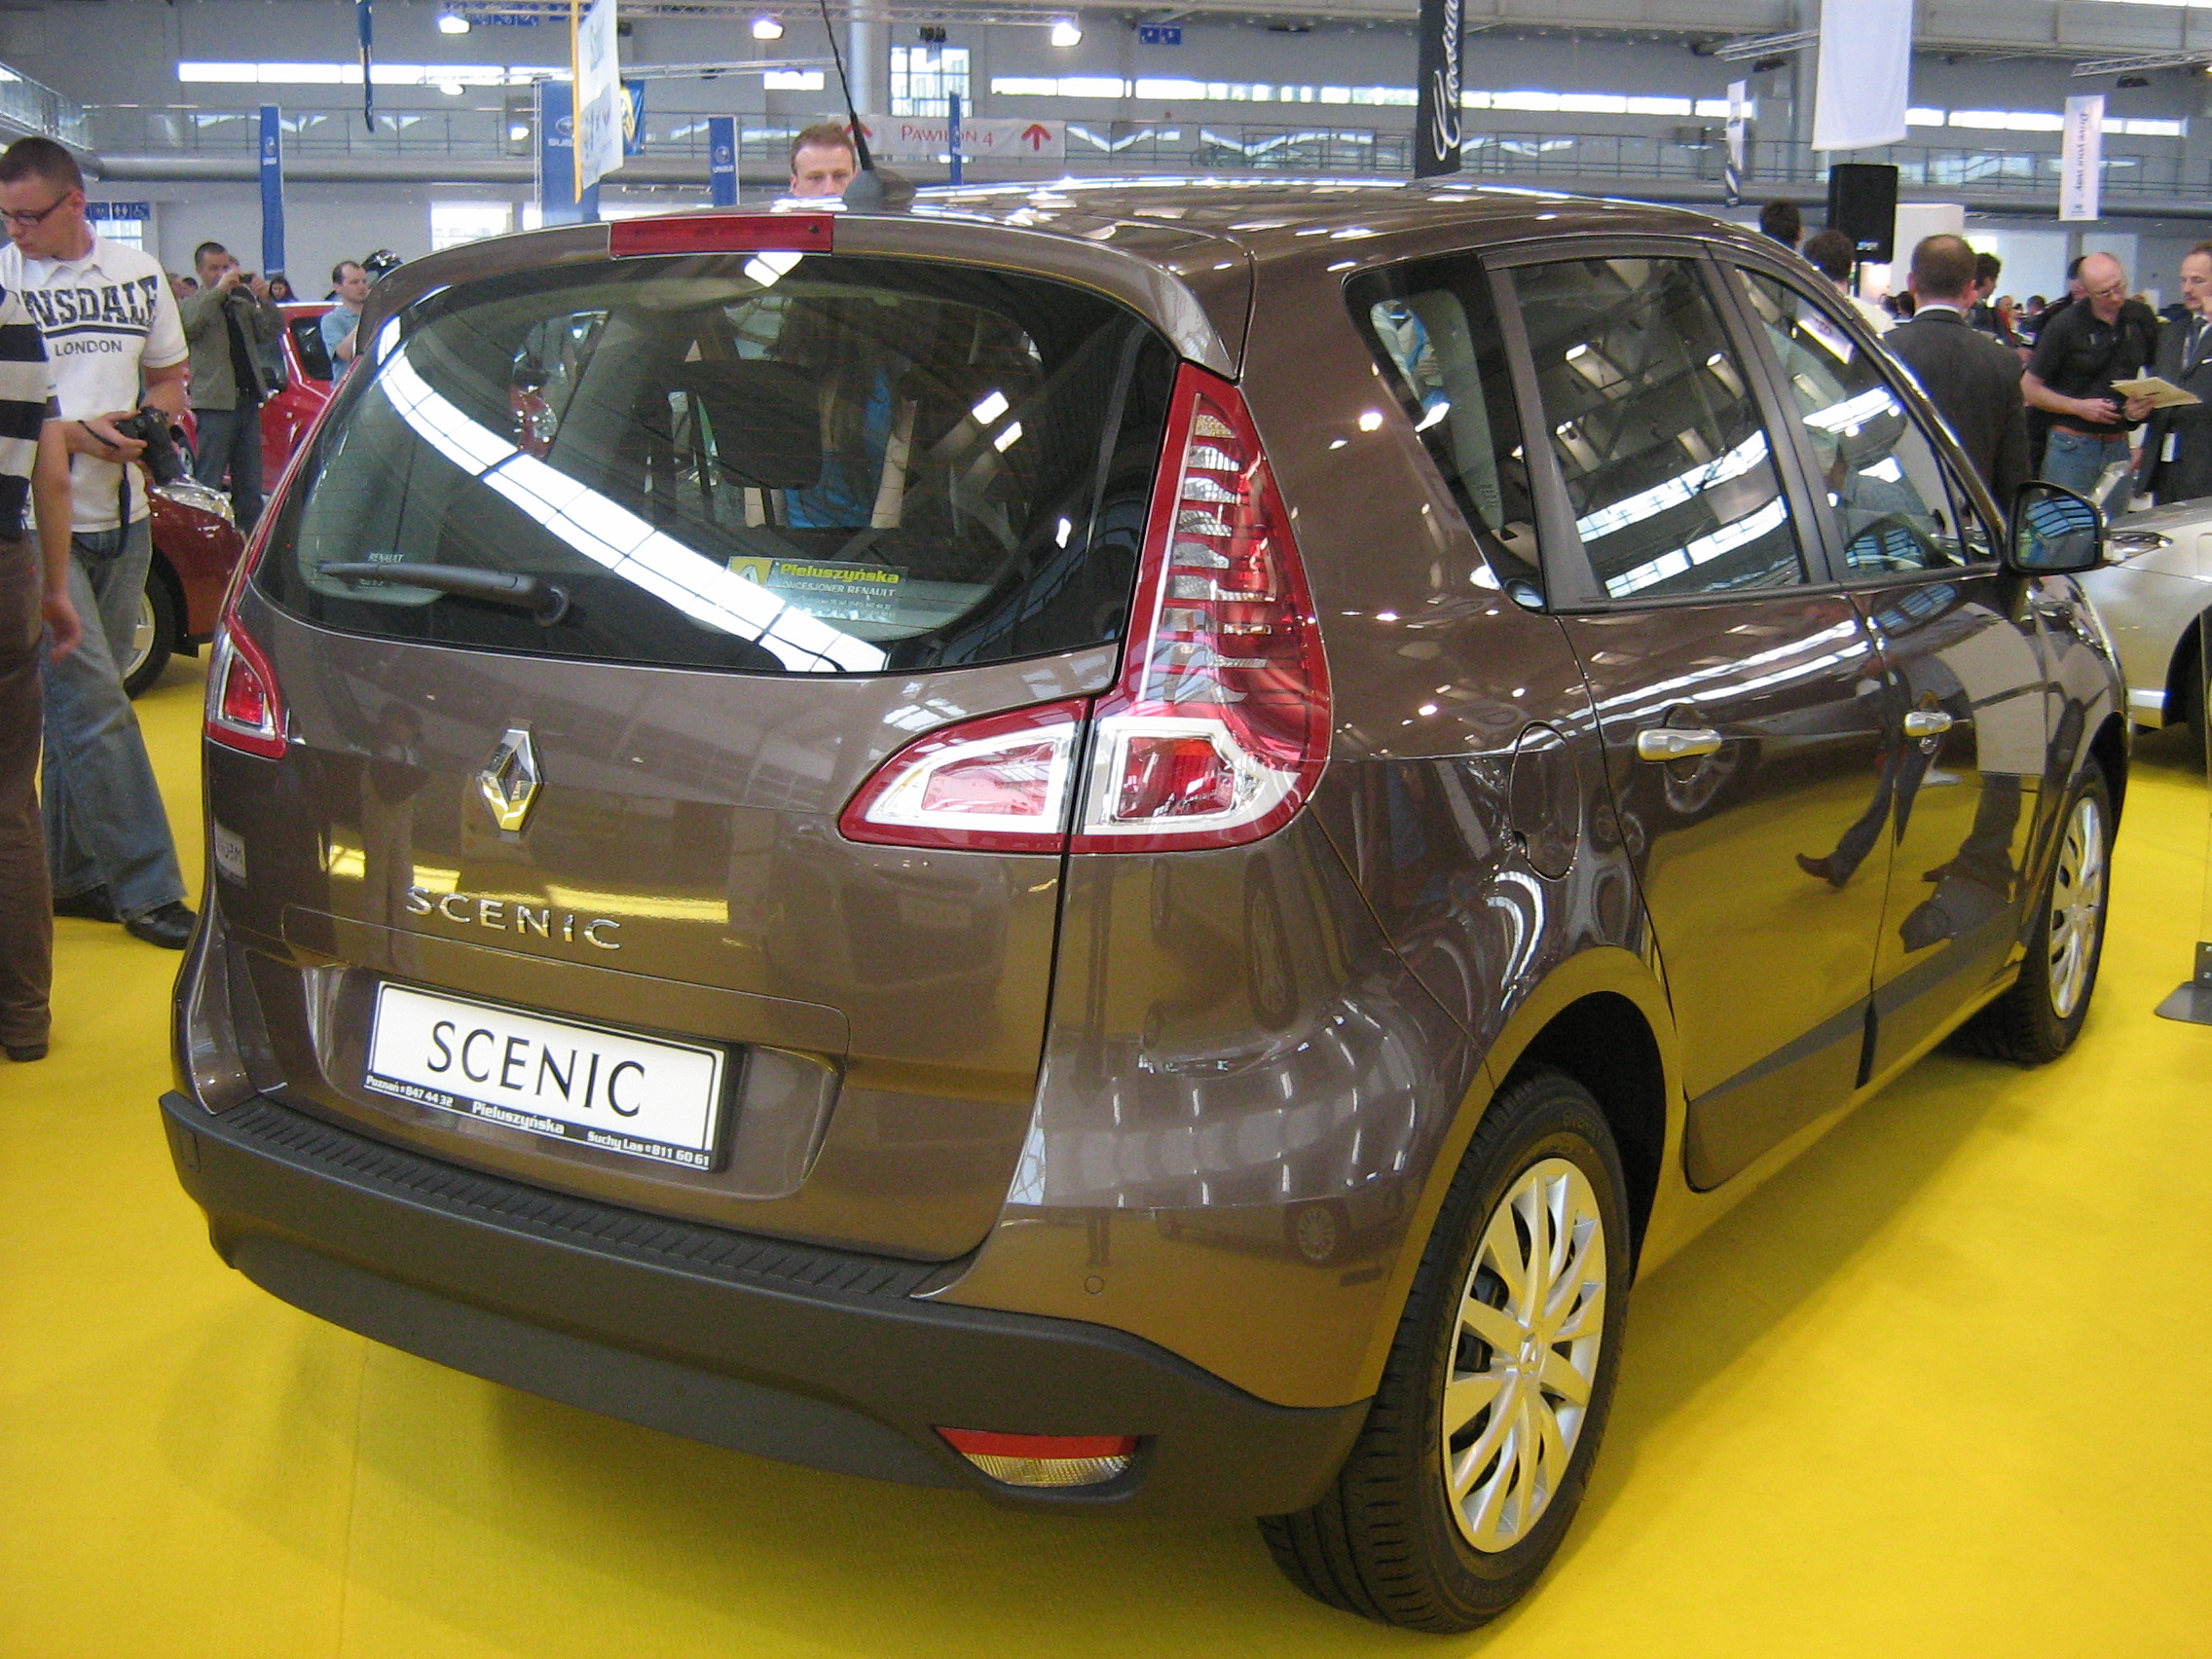 100 renault scenic 2012 j95 3 23 renault scenic 2012 j95 3 g engine and peripherals. Black Bedroom Furniture Sets. Home Design Ideas